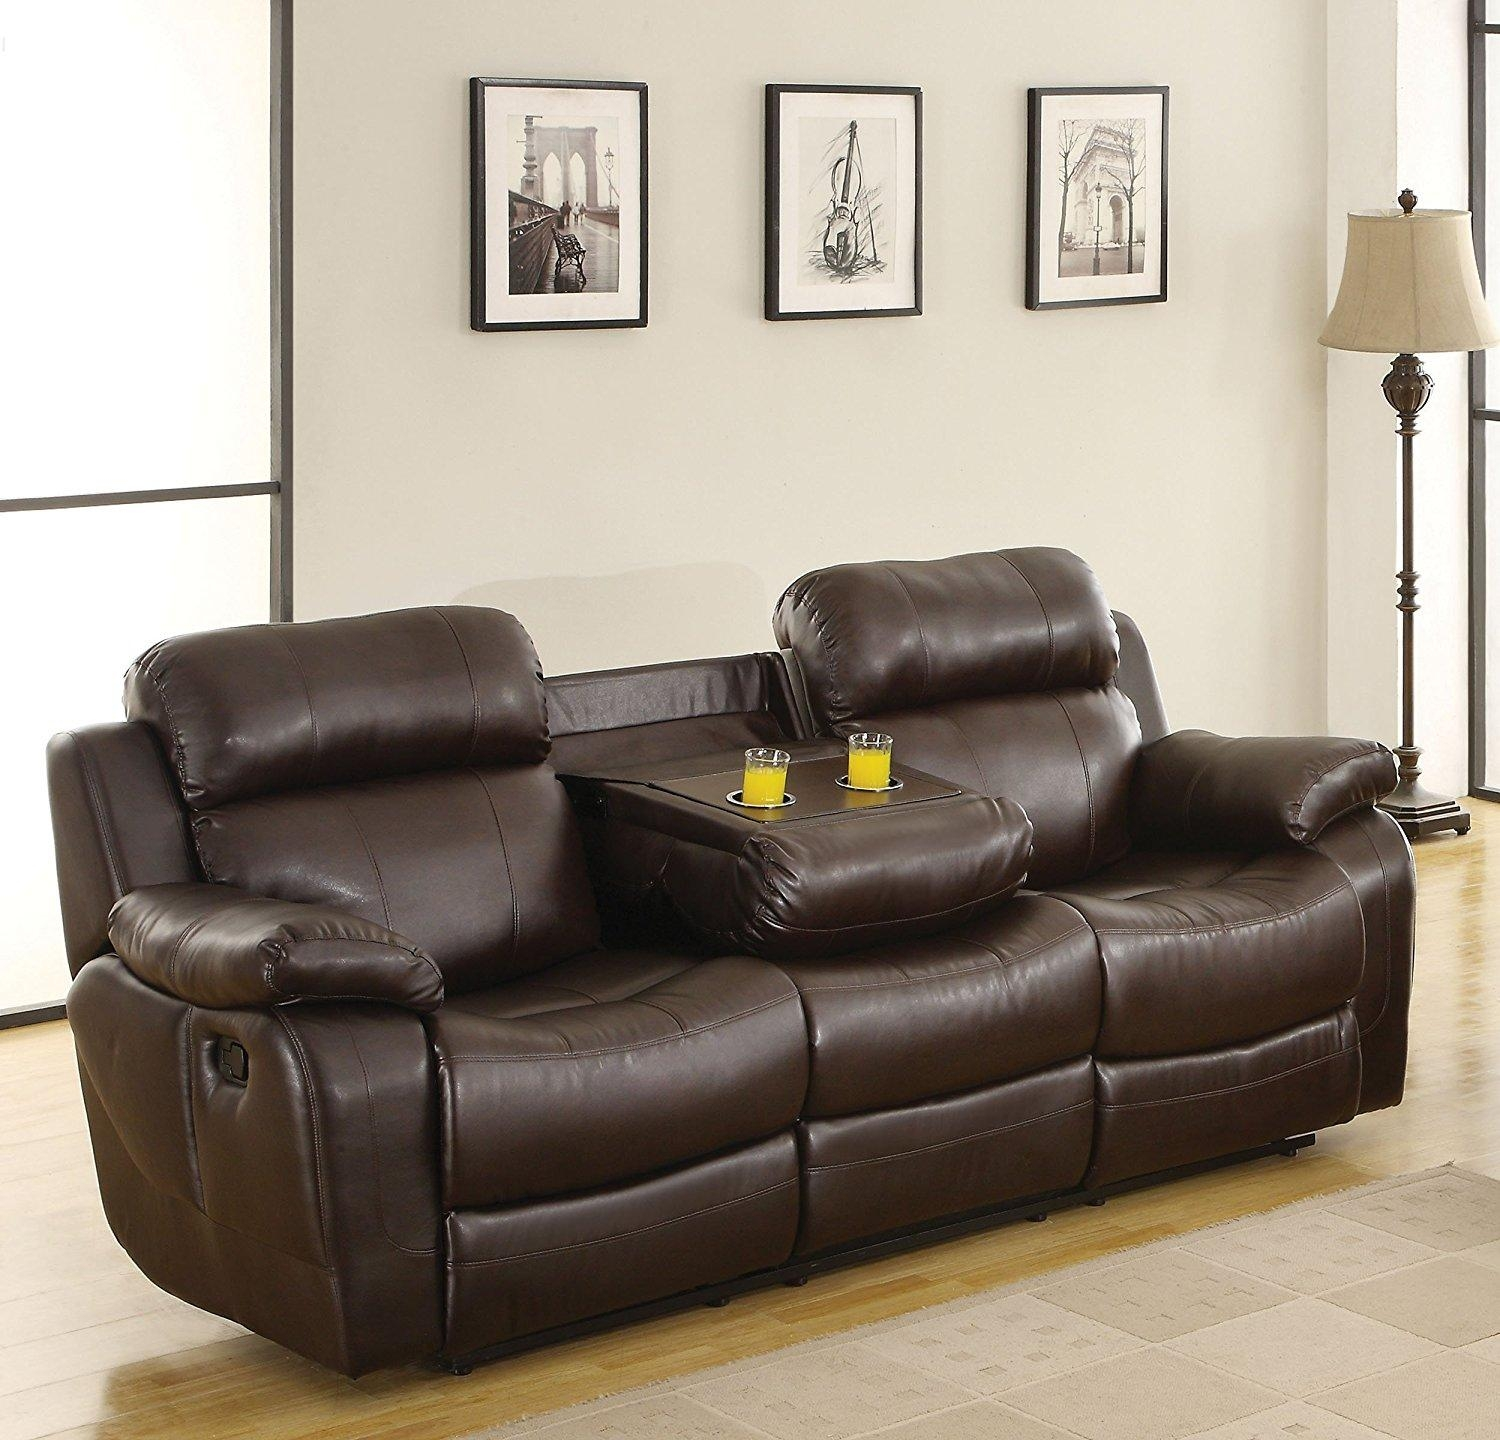 Sofas Center : Reclining Sofas With Consoles Dual Sofa Center Regarding Sofas With Consoles (Image 19 of 20)